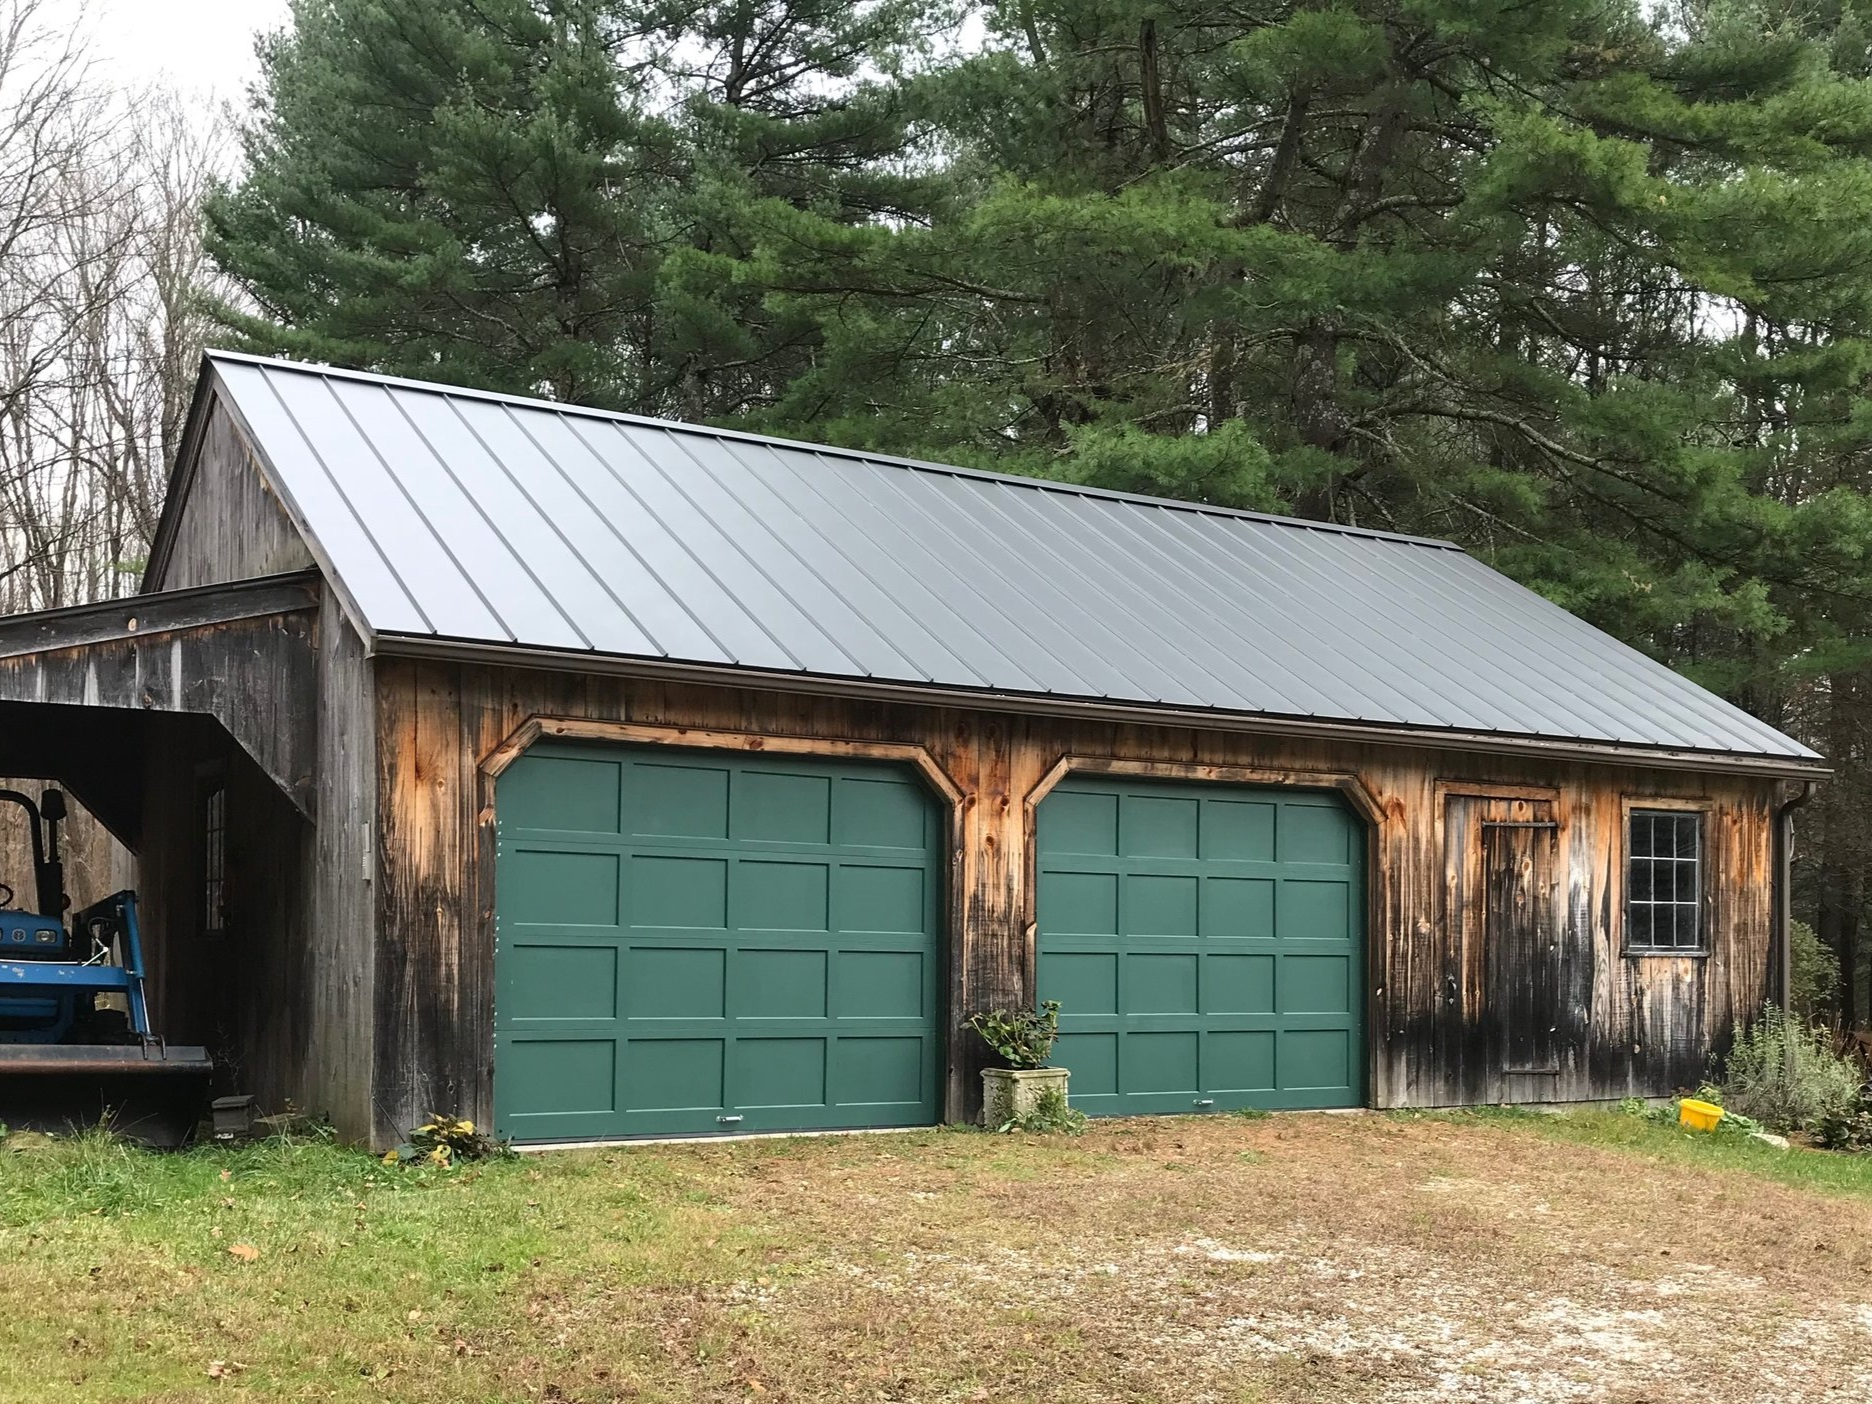 Green Garage Door in Thomaston